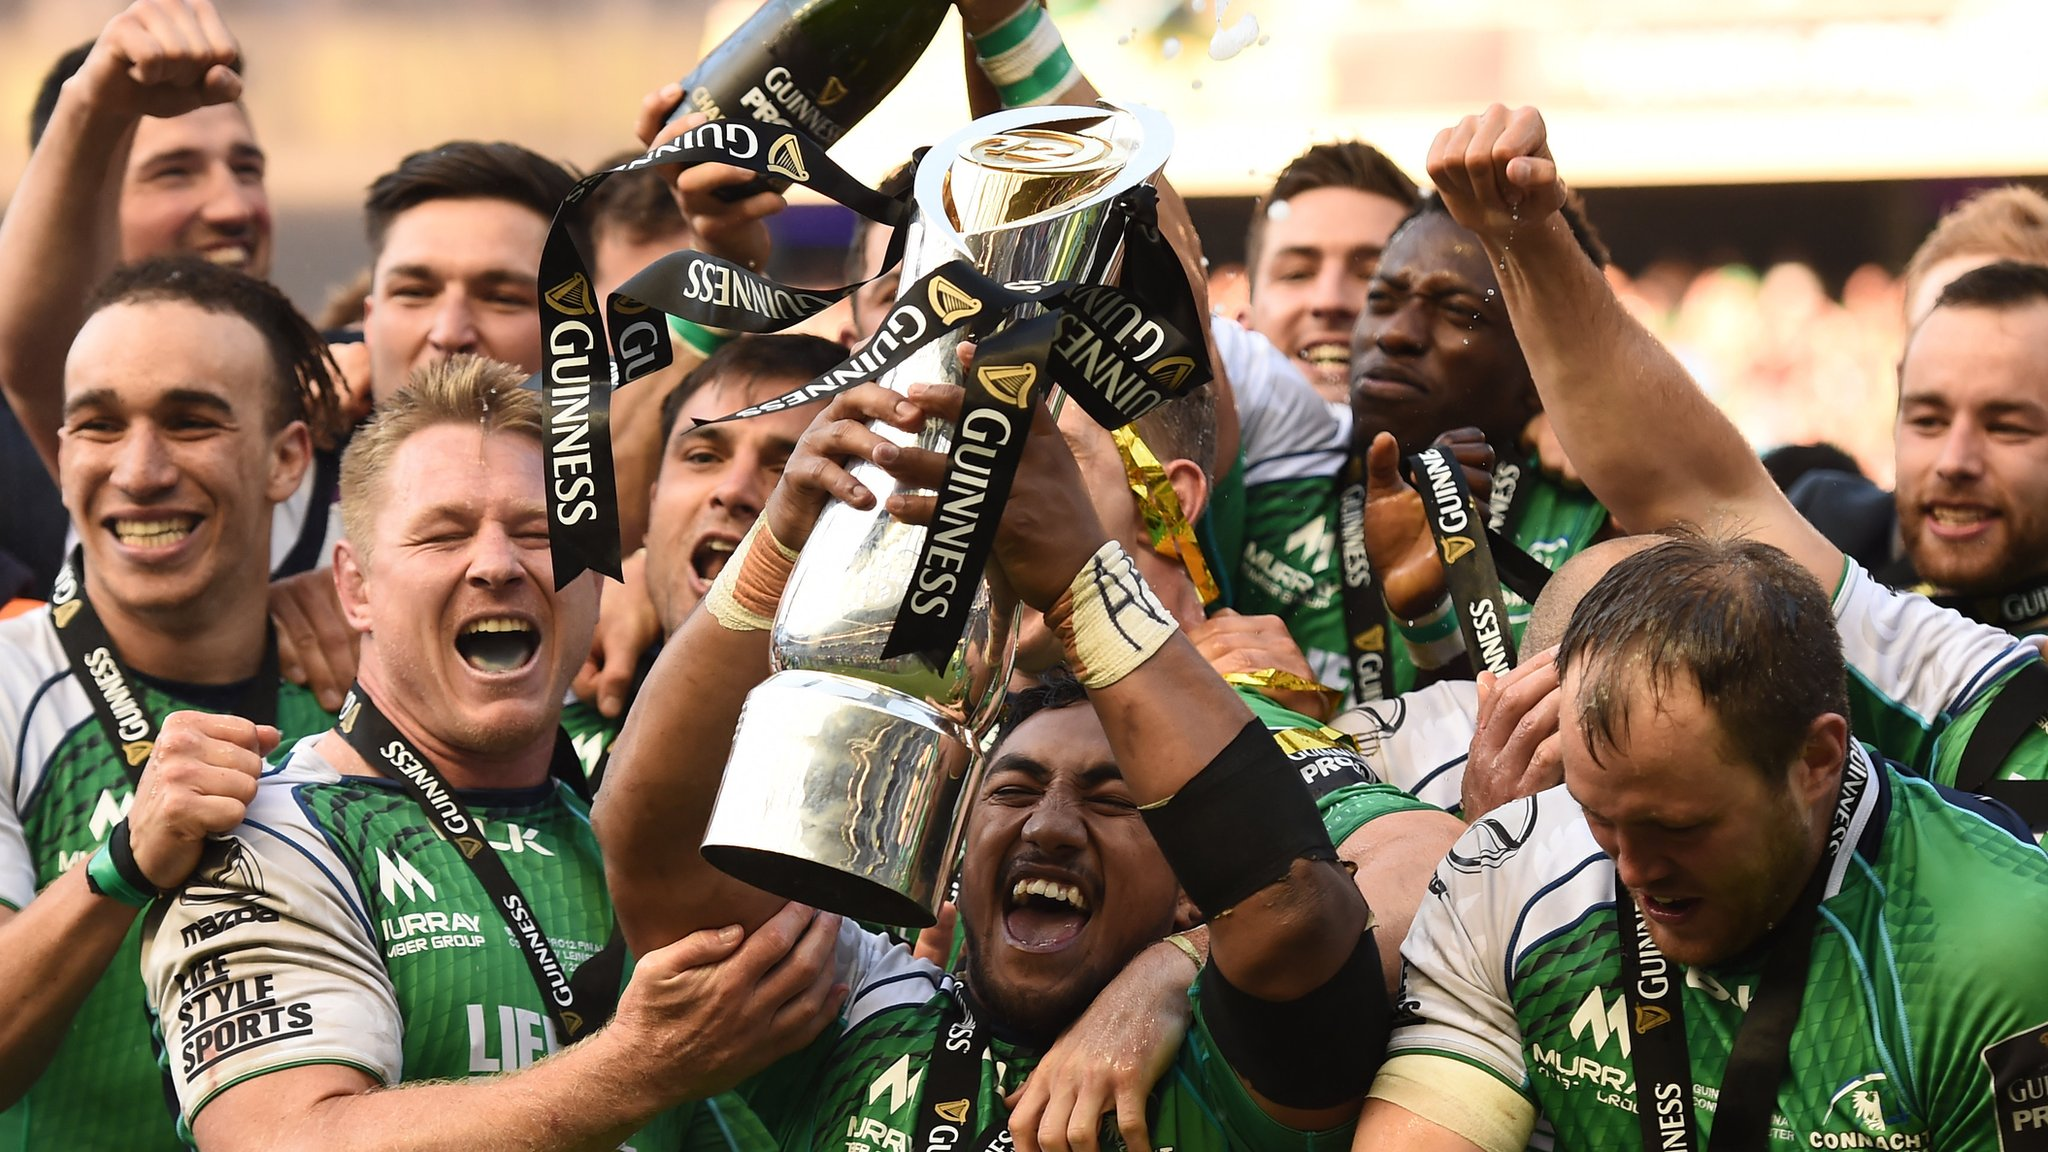 Pro12 holds talks over expanding into north America